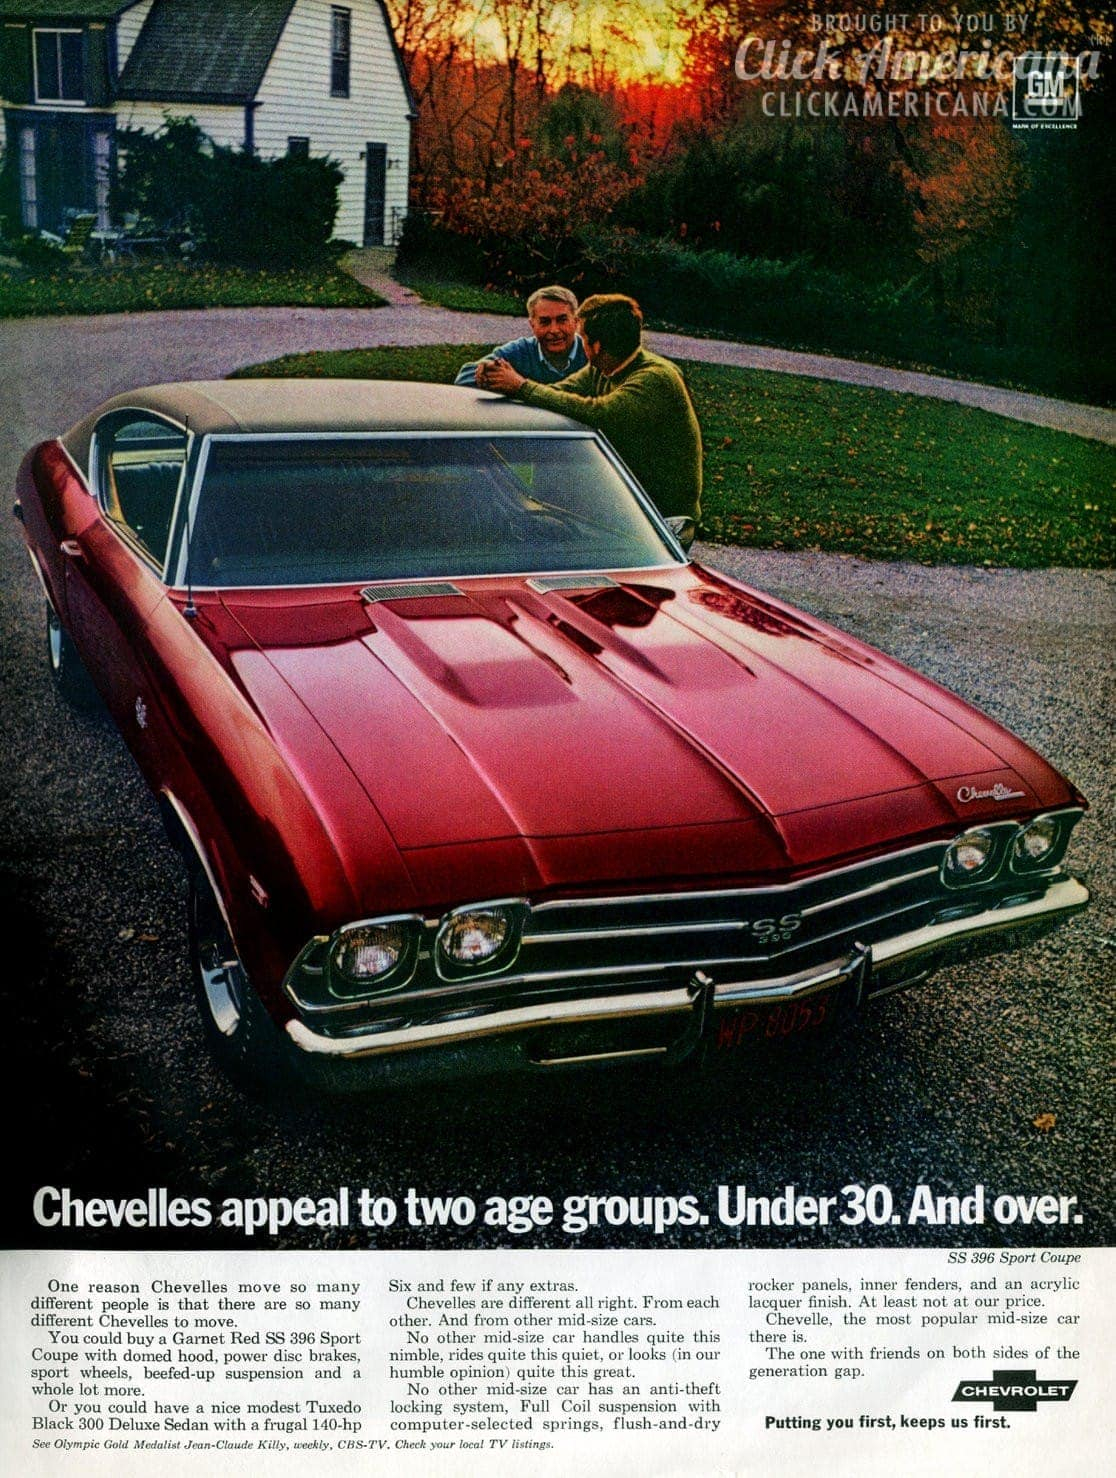 chevy chevelle malibu 1969 click americana. Black Bedroom Furniture Sets. Home Design Ideas